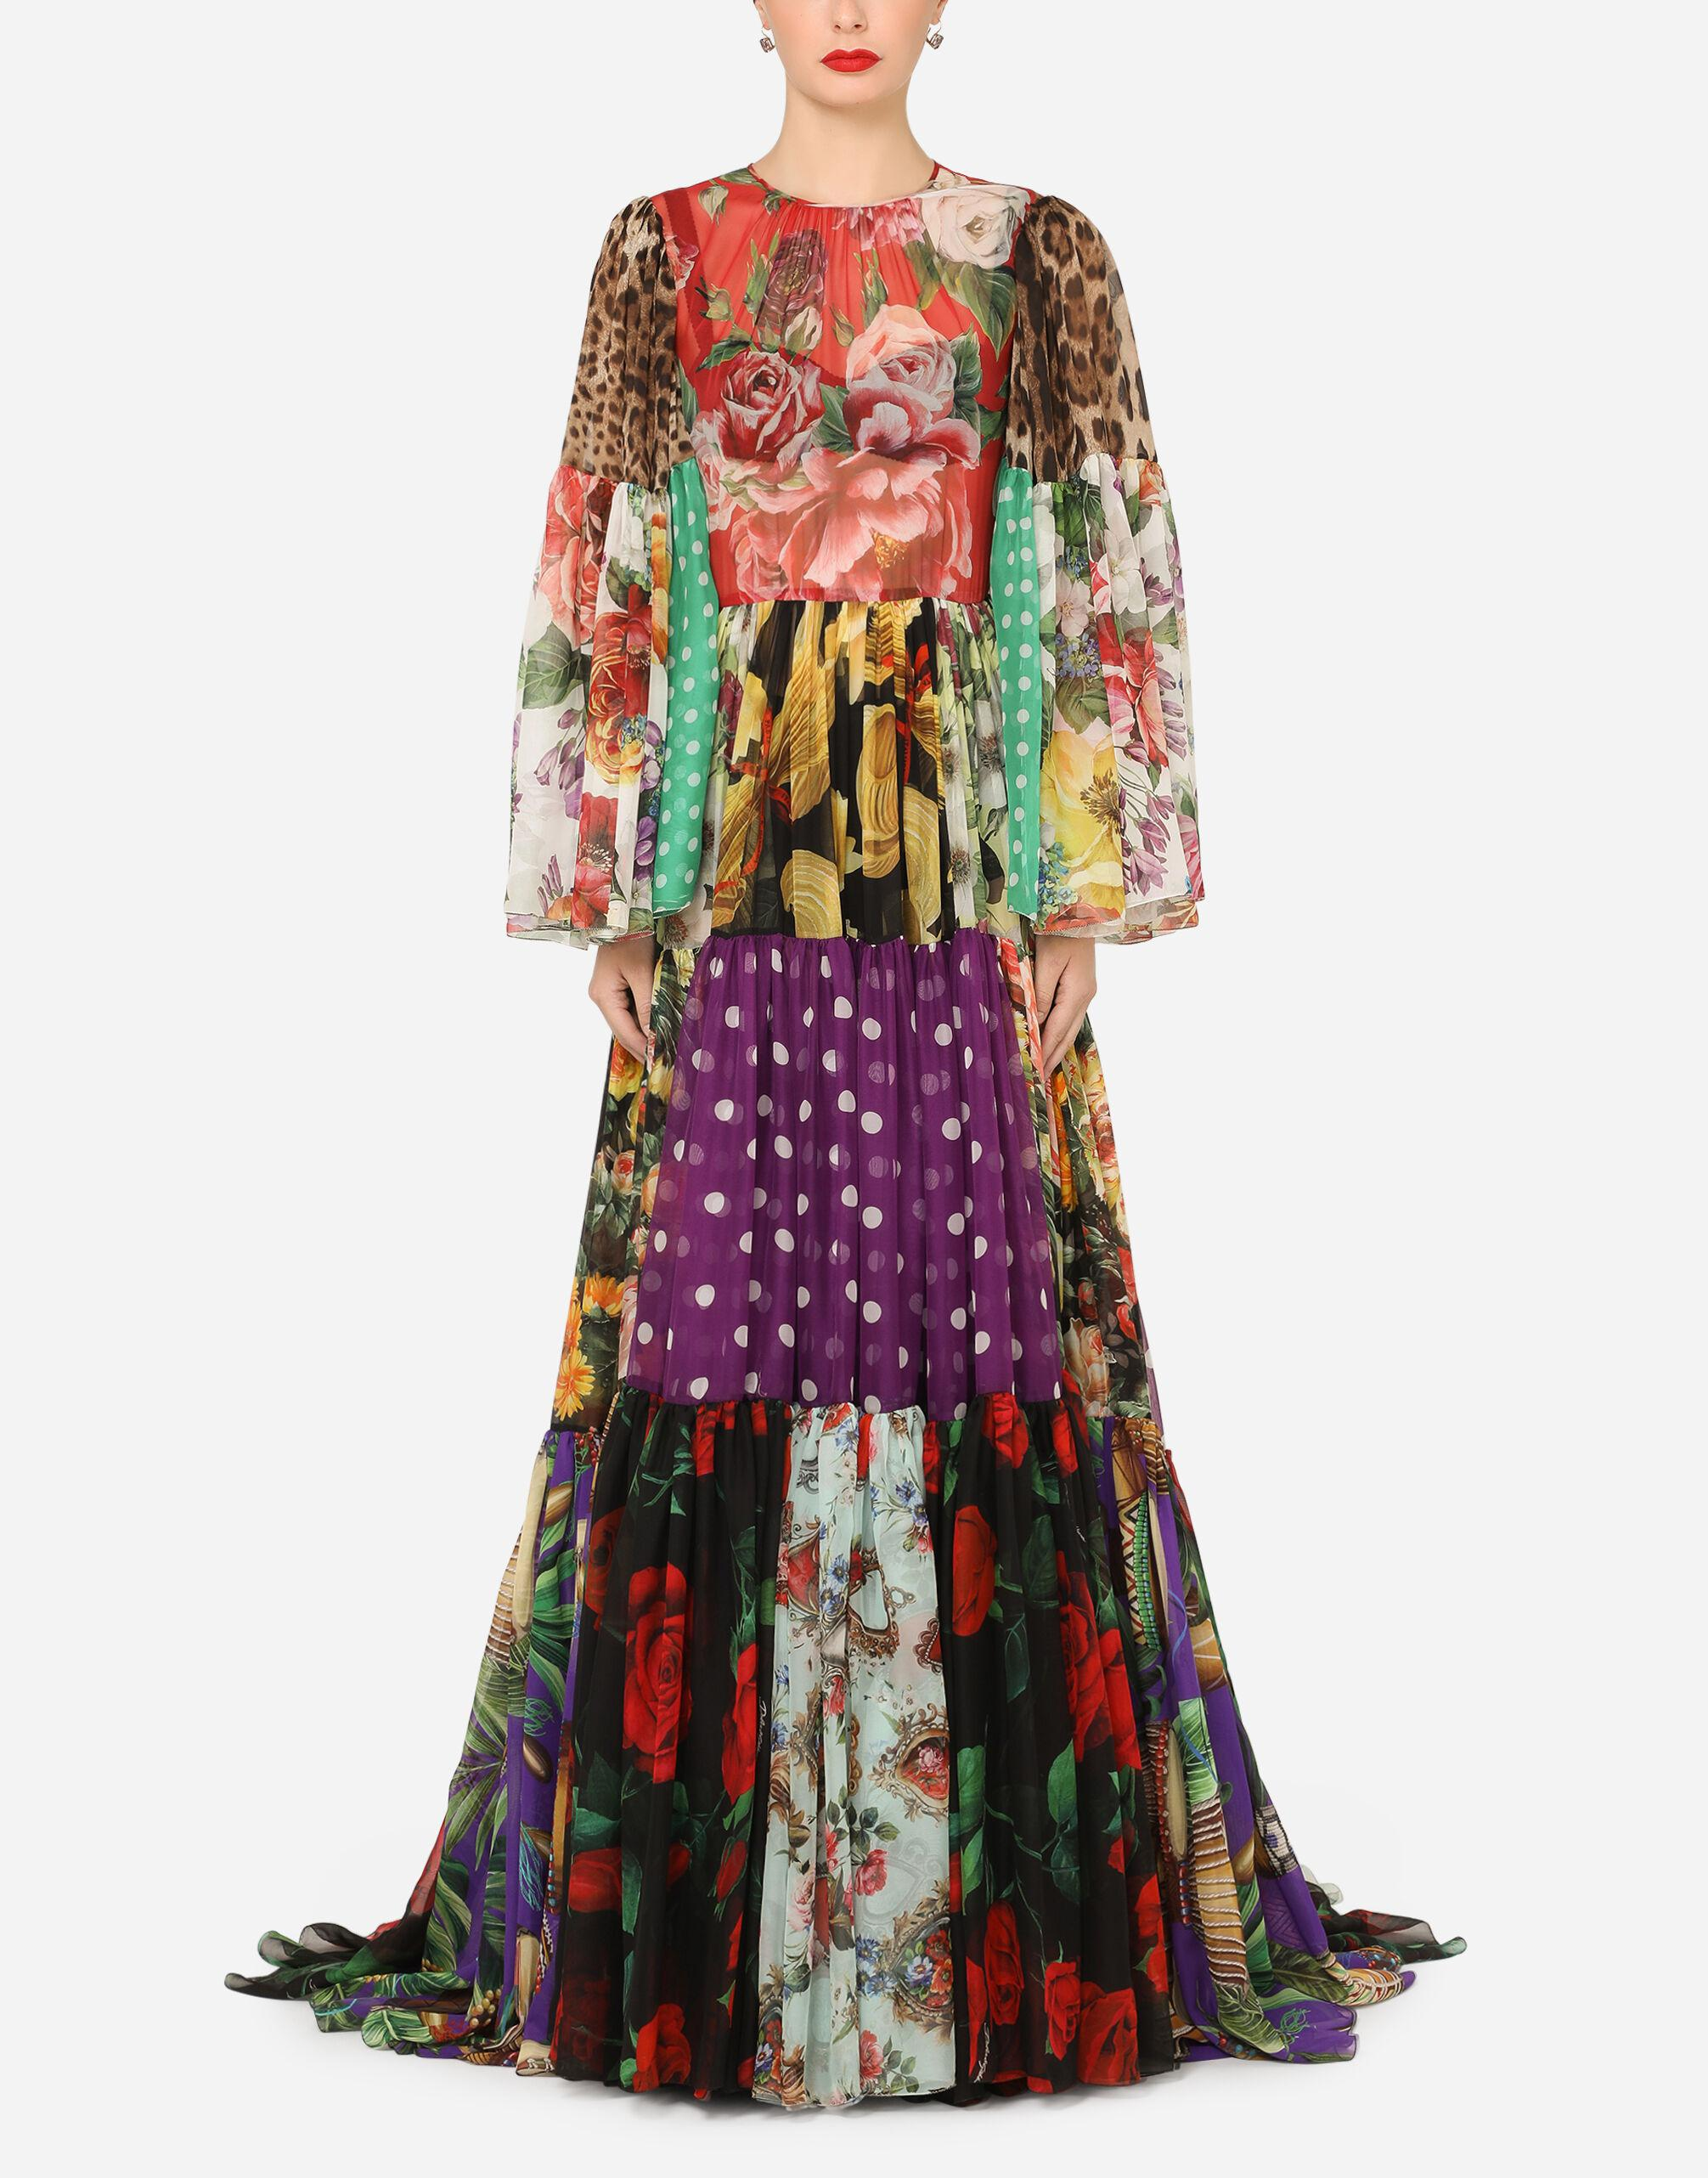 Long chiffon dress with mixed patchwork prints